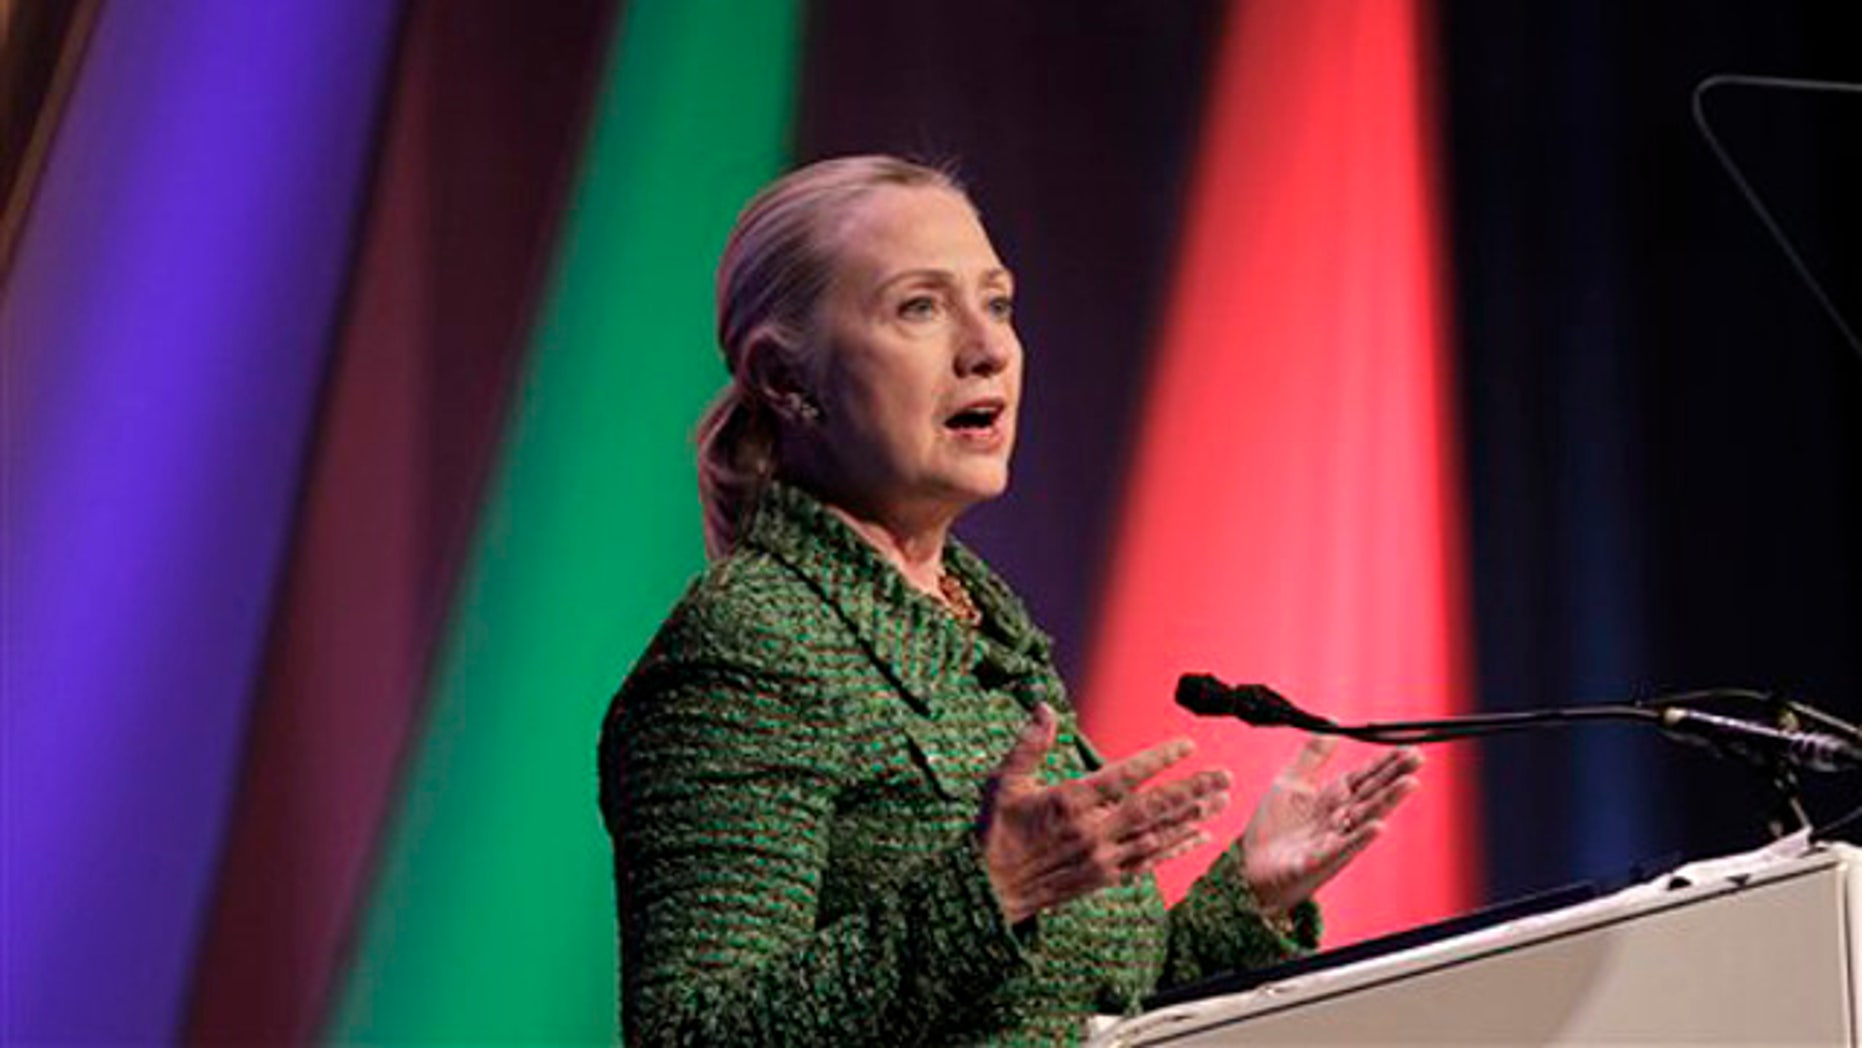 Dec. 8, 2011: Secretary of State Hillary Clinton delivers a speech at the Conference on Internet Freedom in The Hague, Netherlands.